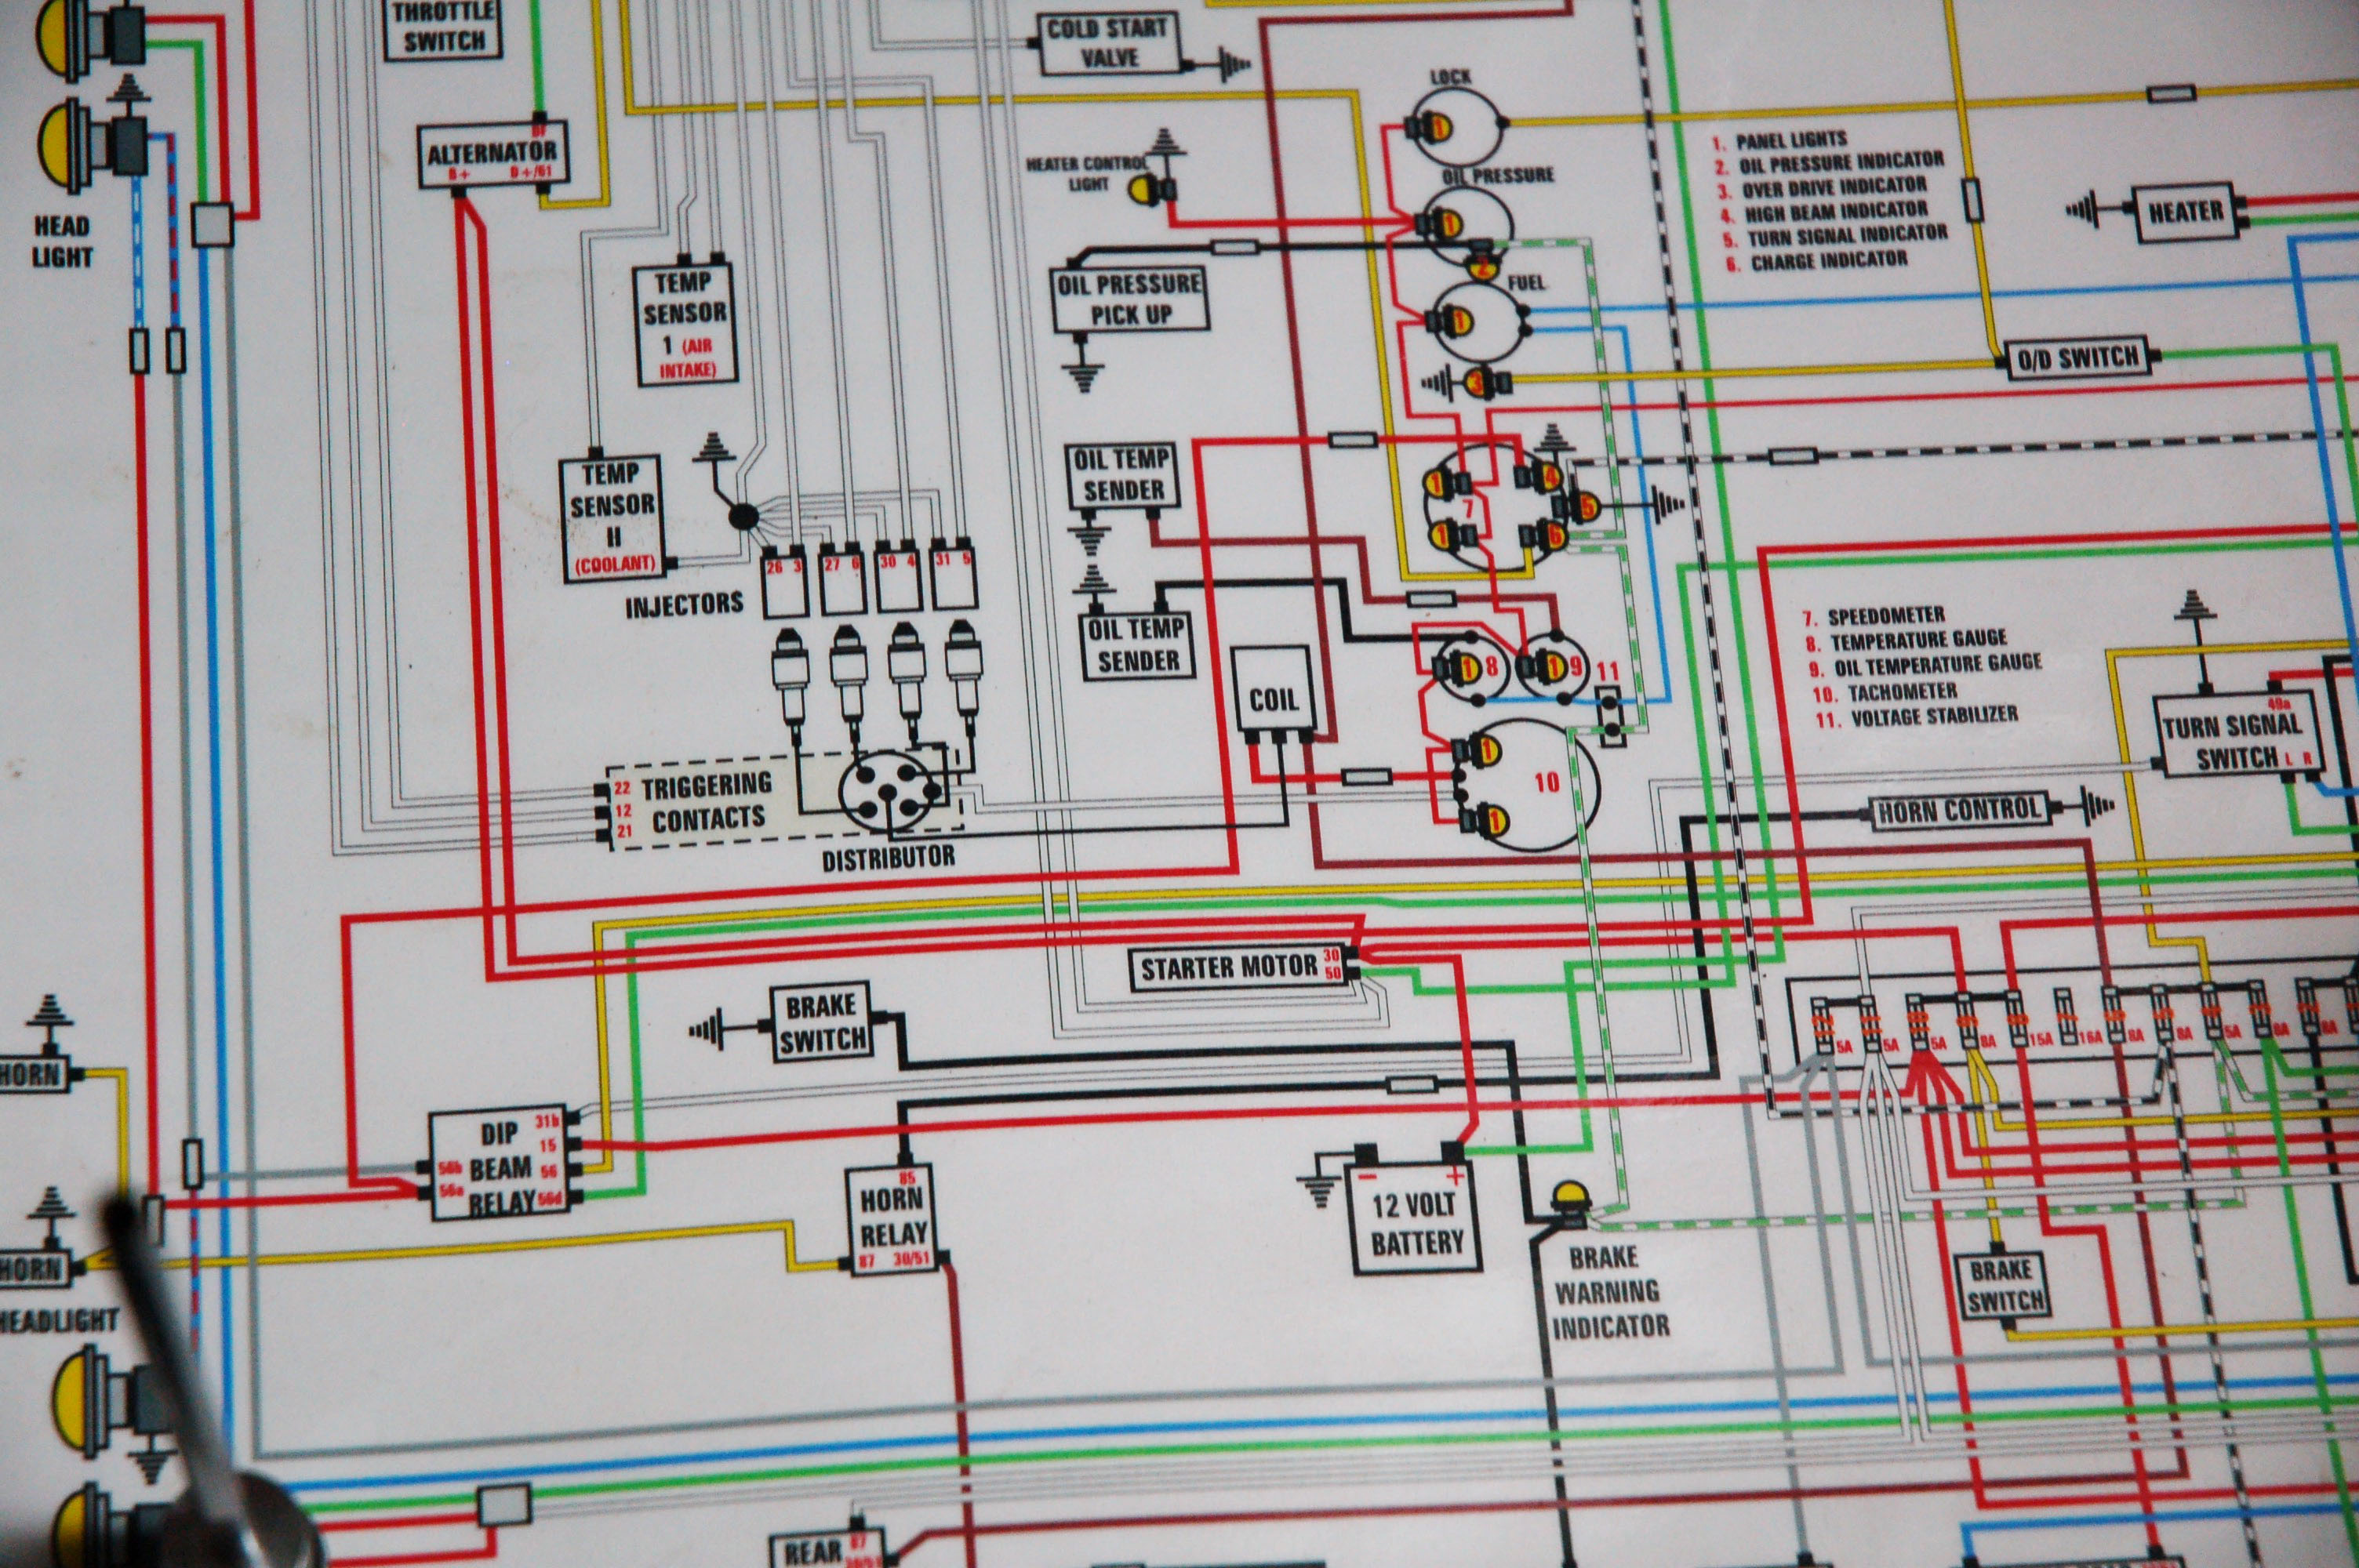 Groovy Painless Wiring Harness Instructions Basic Electronics Wiring Diagram Wiring Cloud Rdonaheevemohammedshrineorg